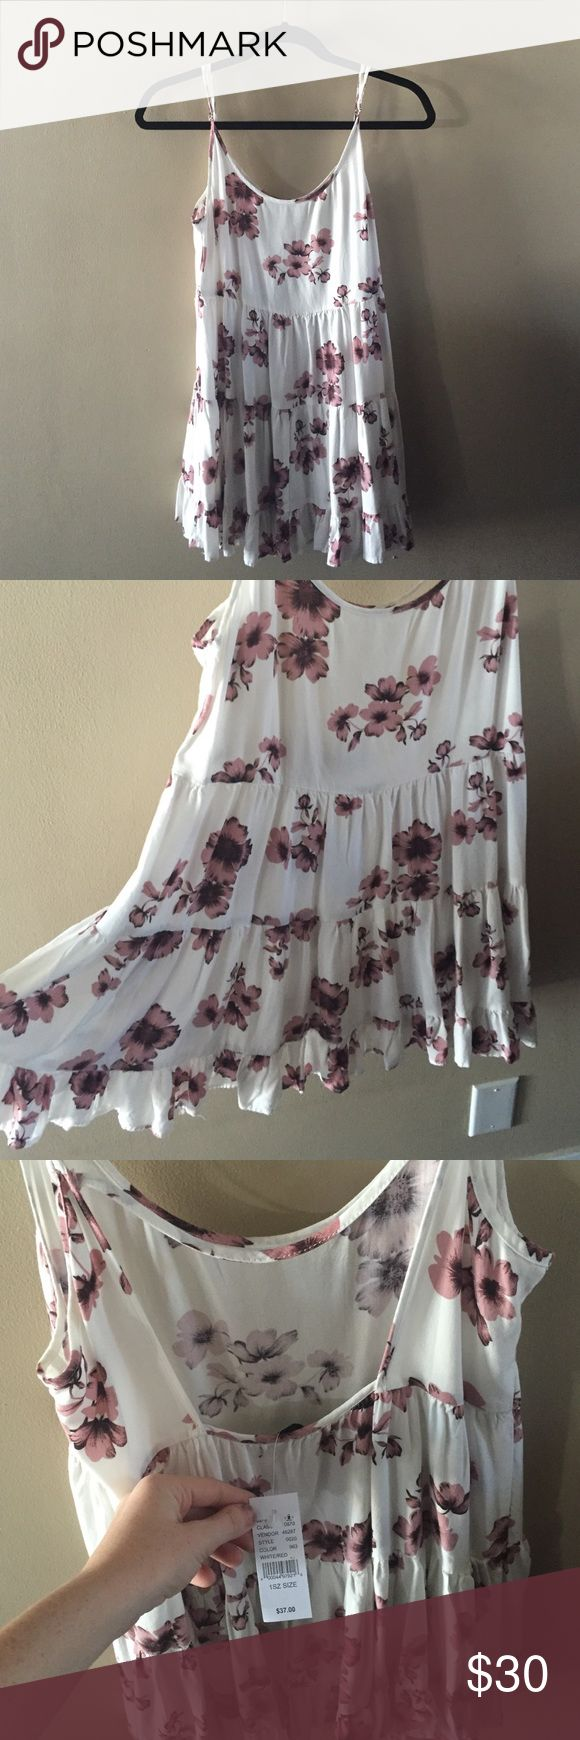 Pink and white floral skater dress It's a spaghetti strap dress that I've never worn. Bought it cause it's cute but I don't like the straps. One of brandys signature dress designs. Brandy Melville Dresses Mini